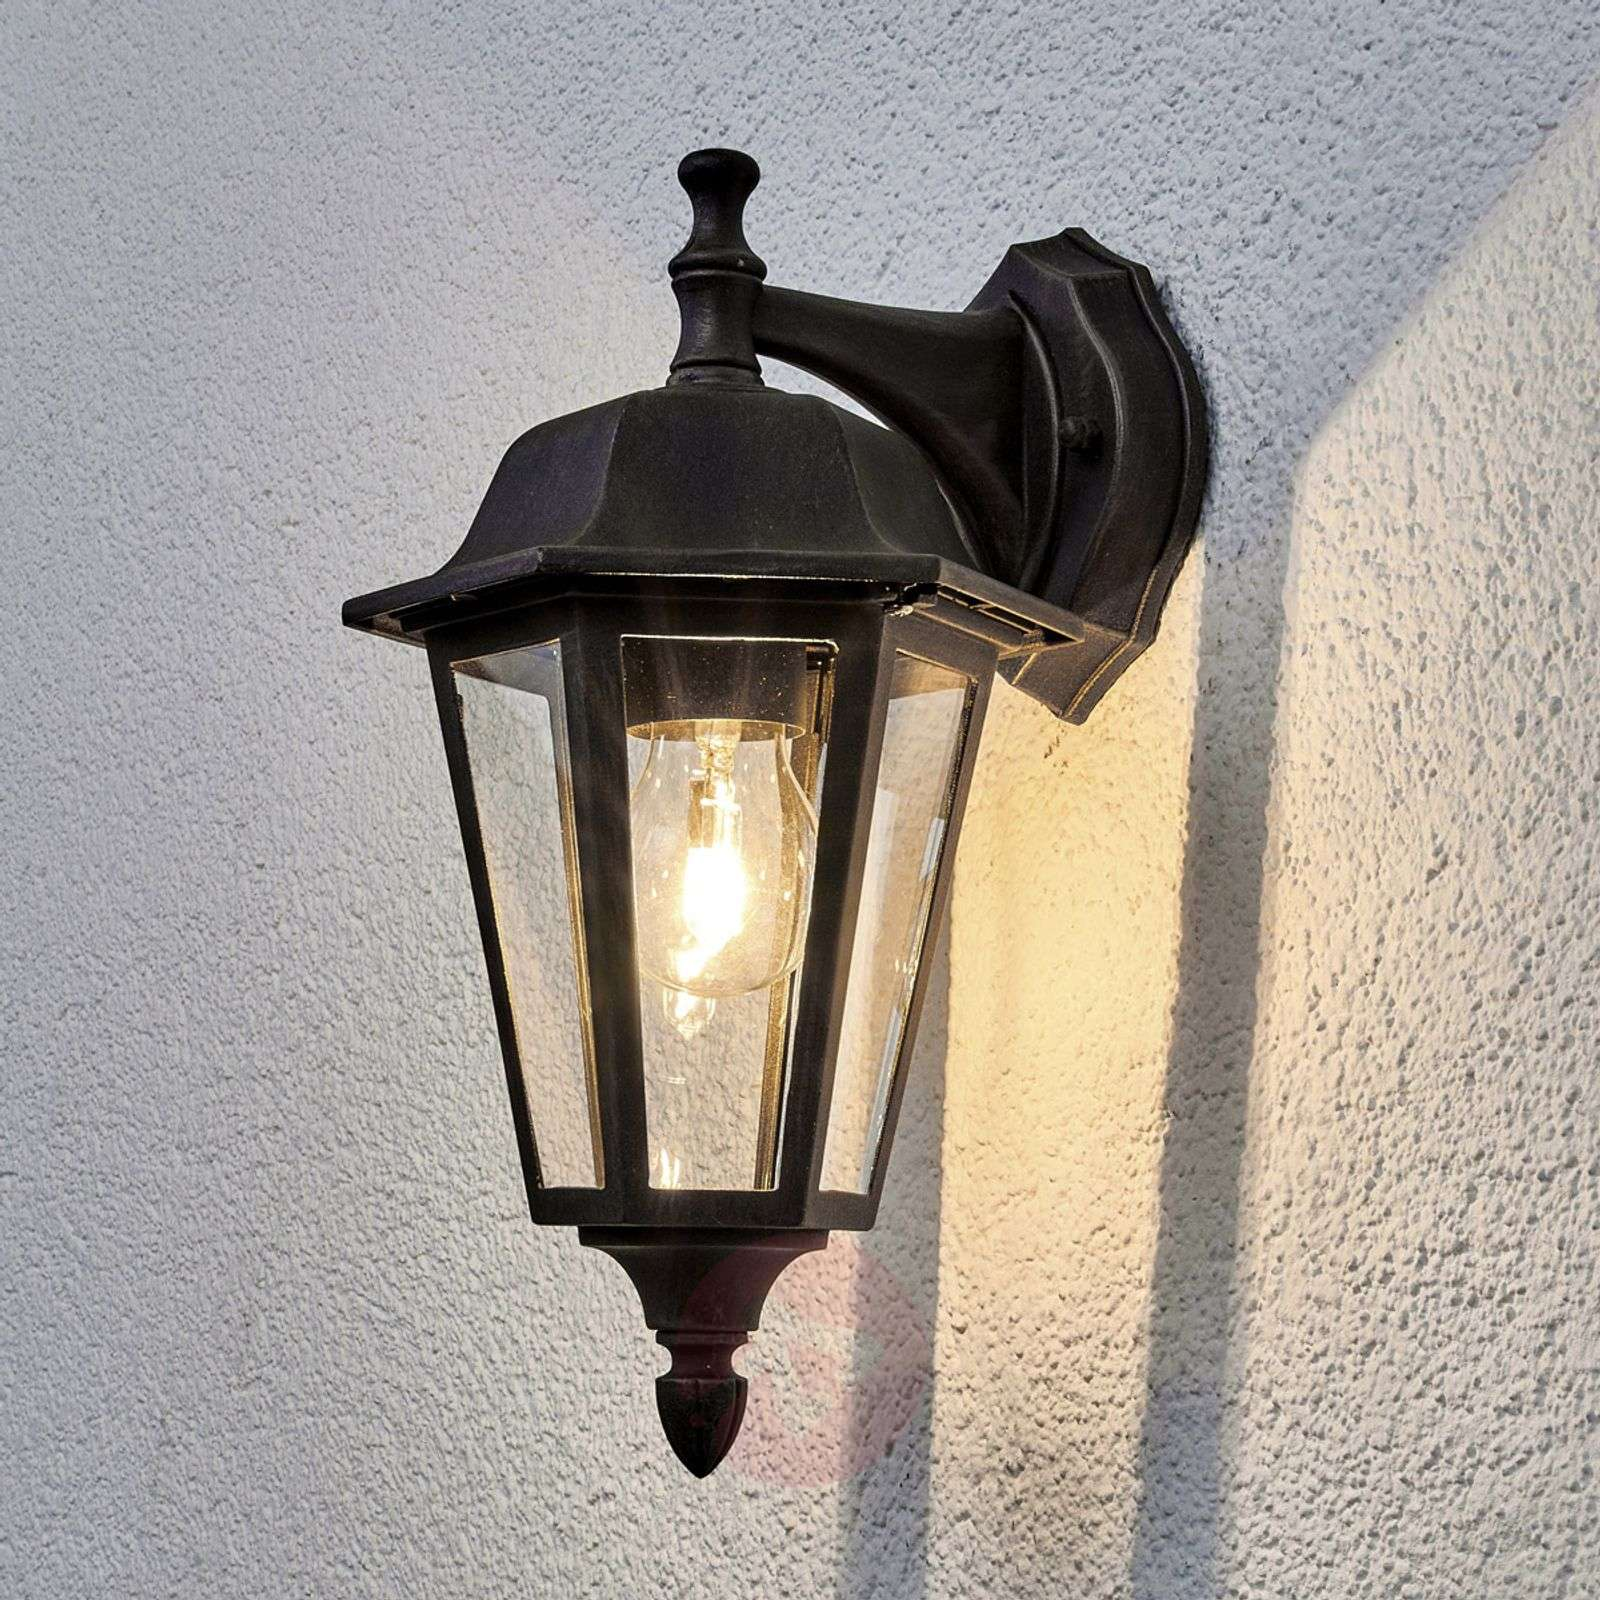 Plafoniera Da Esterno Ruggine : Acquista applique da esterno lamina color ruggine lampade